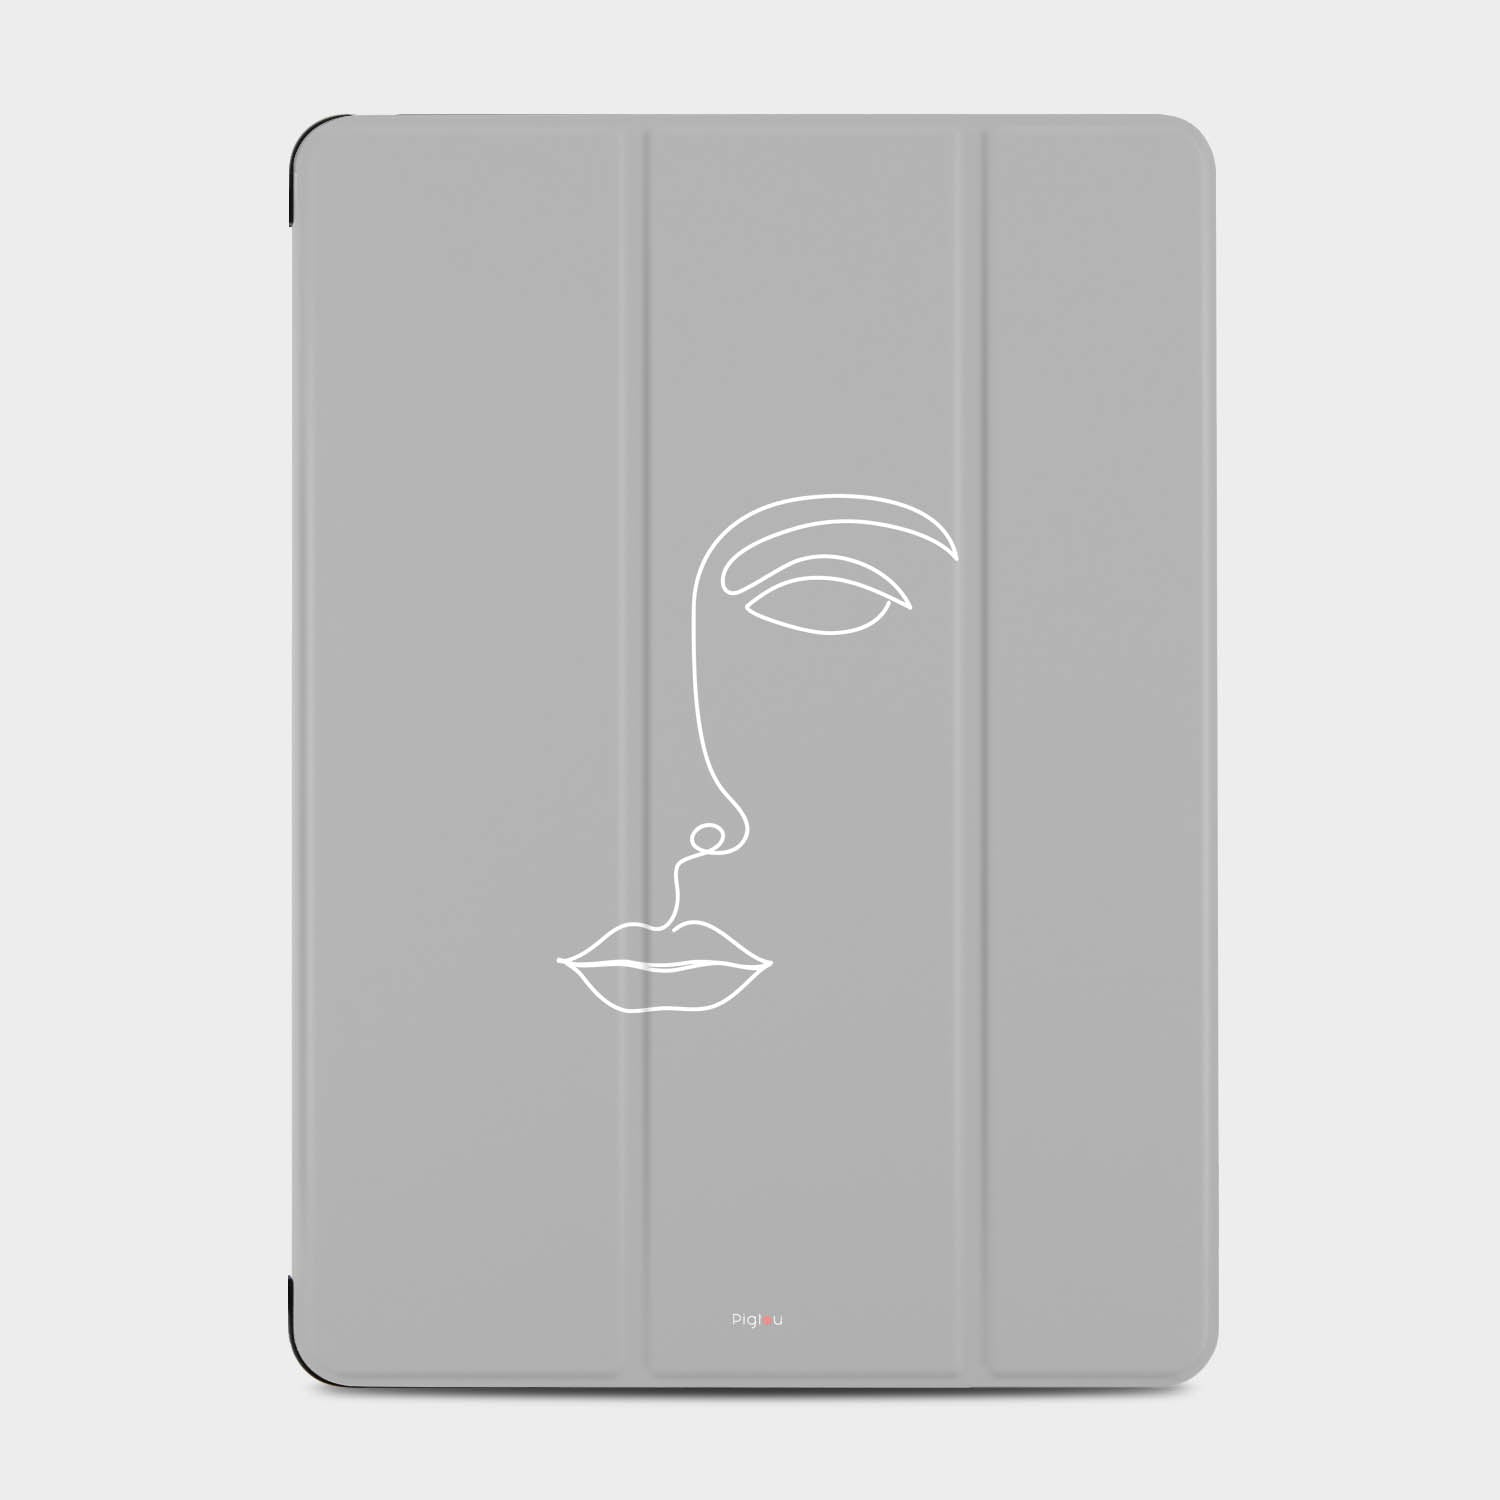 SILHOUETTE FACE iPad Pro 10.5 cases | Pigtou